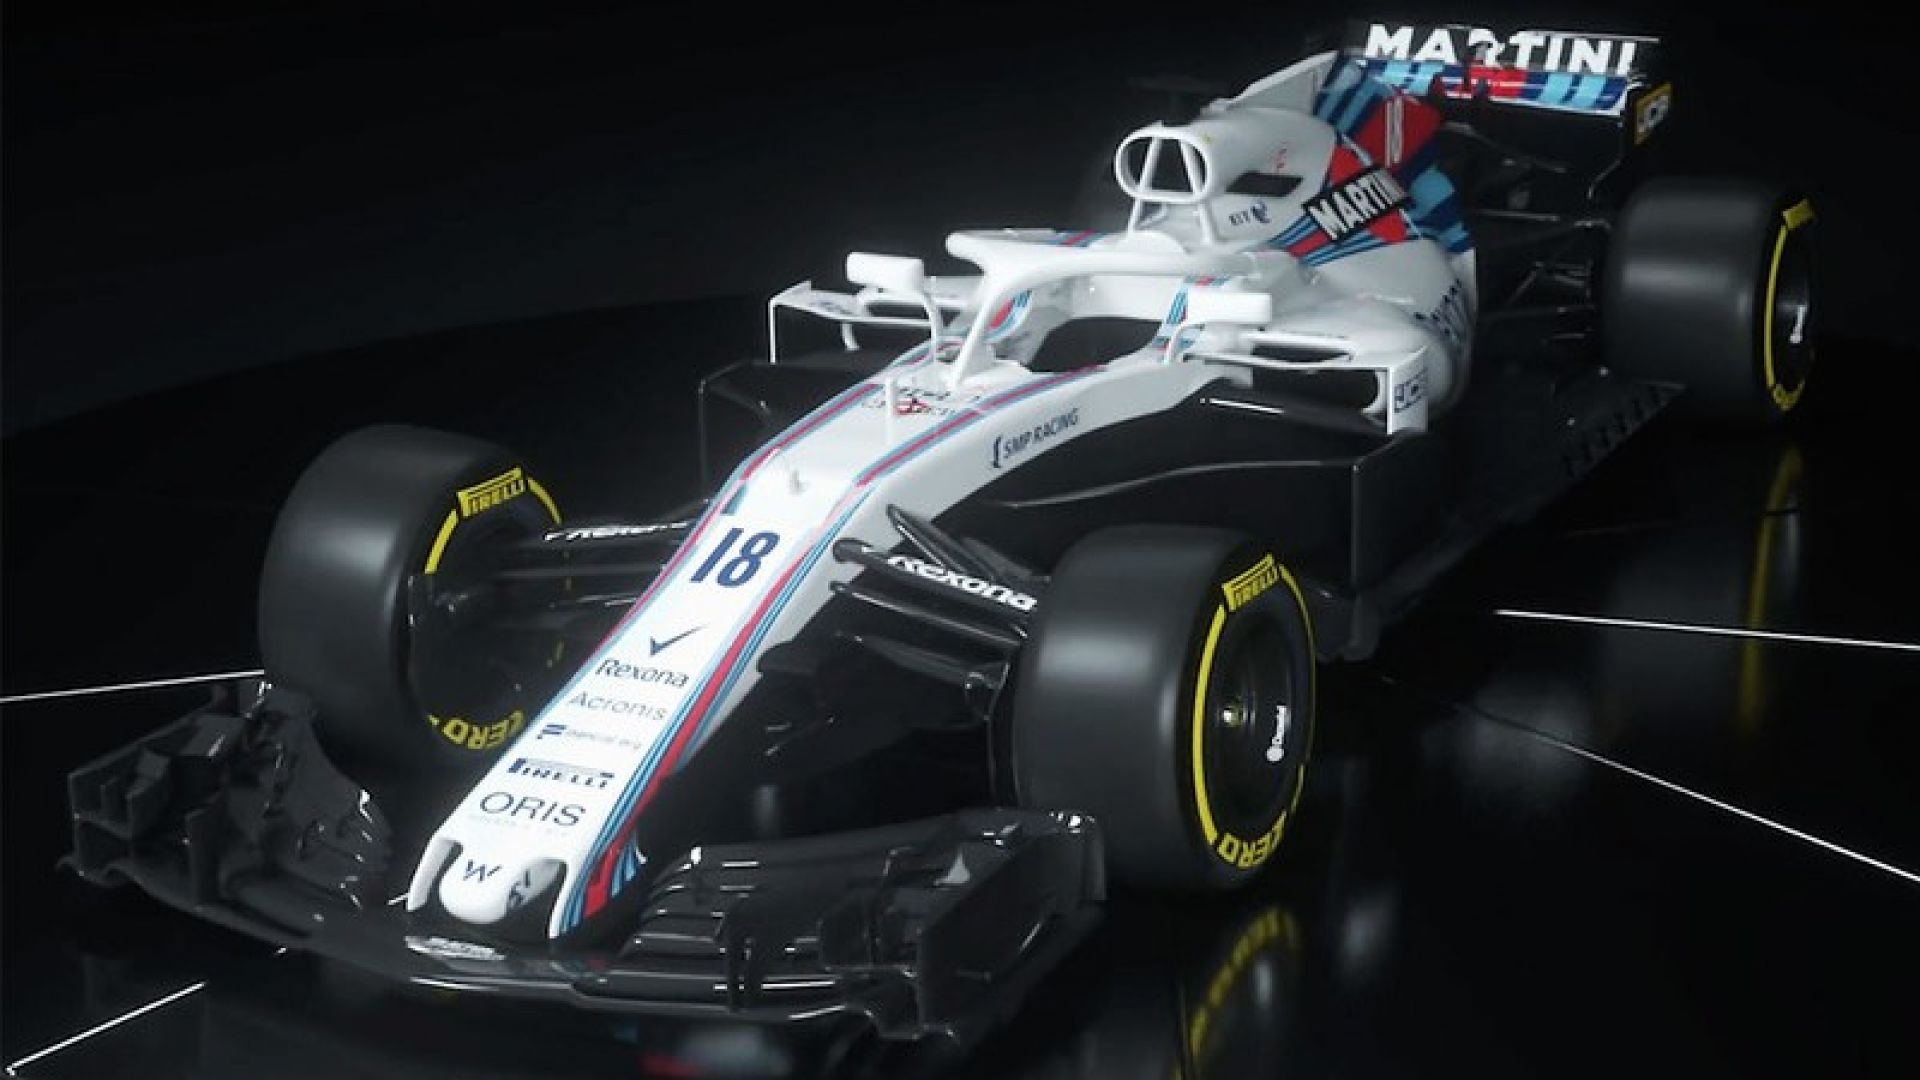 f1 2018 presentata la nuova williams fw41 di stroll e sirotkin motorbox. Black Bedroom Furniture Sets. Home Design Ideas